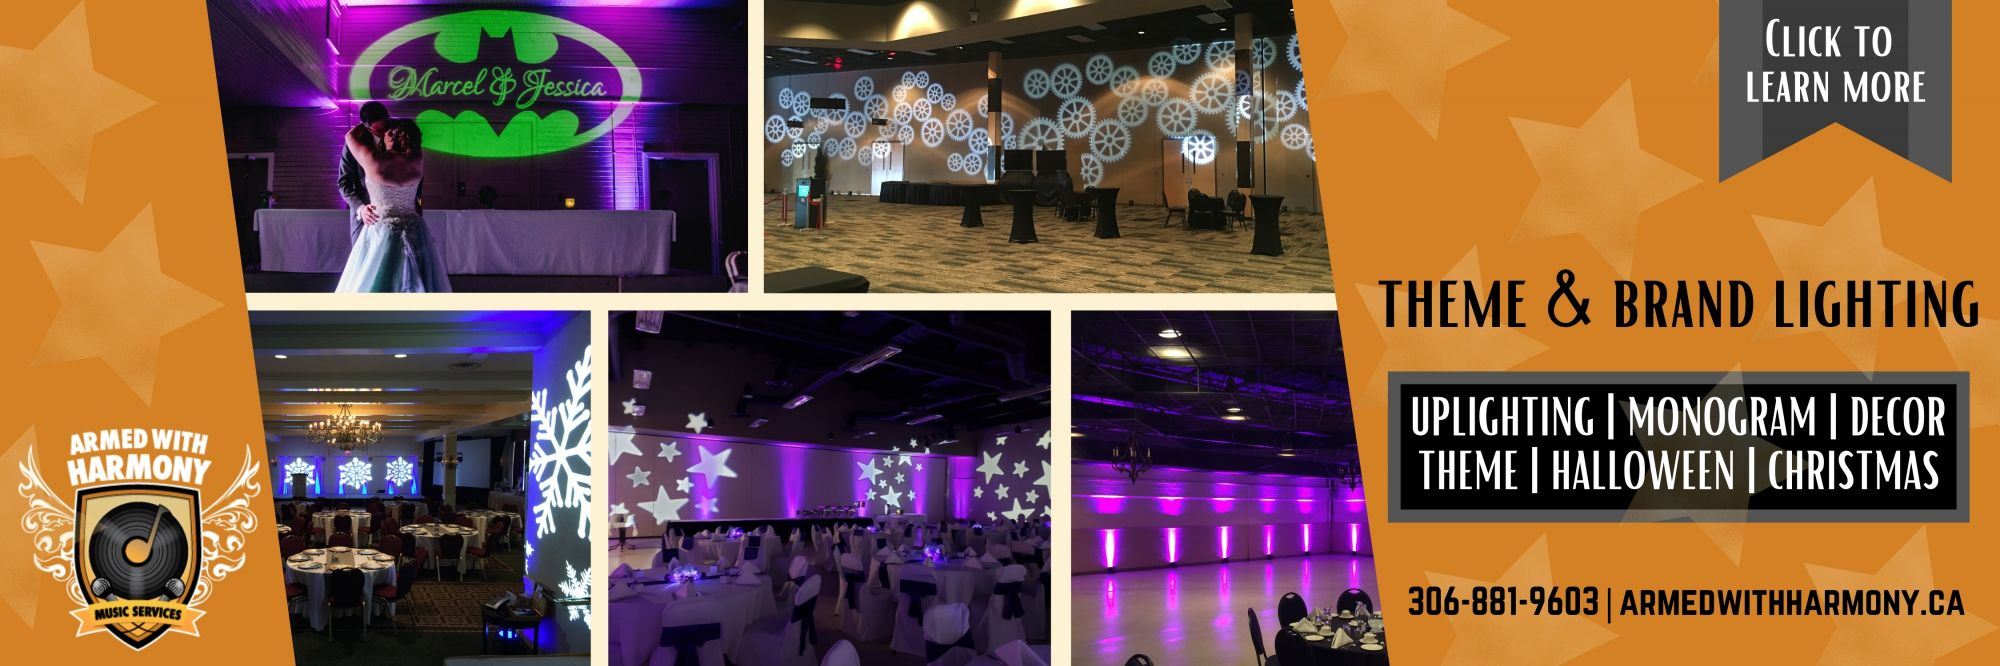 Armed With Harmony  | Saskatoon Wedding DJs, Photo Booths, Outdoor Movies & Event Production